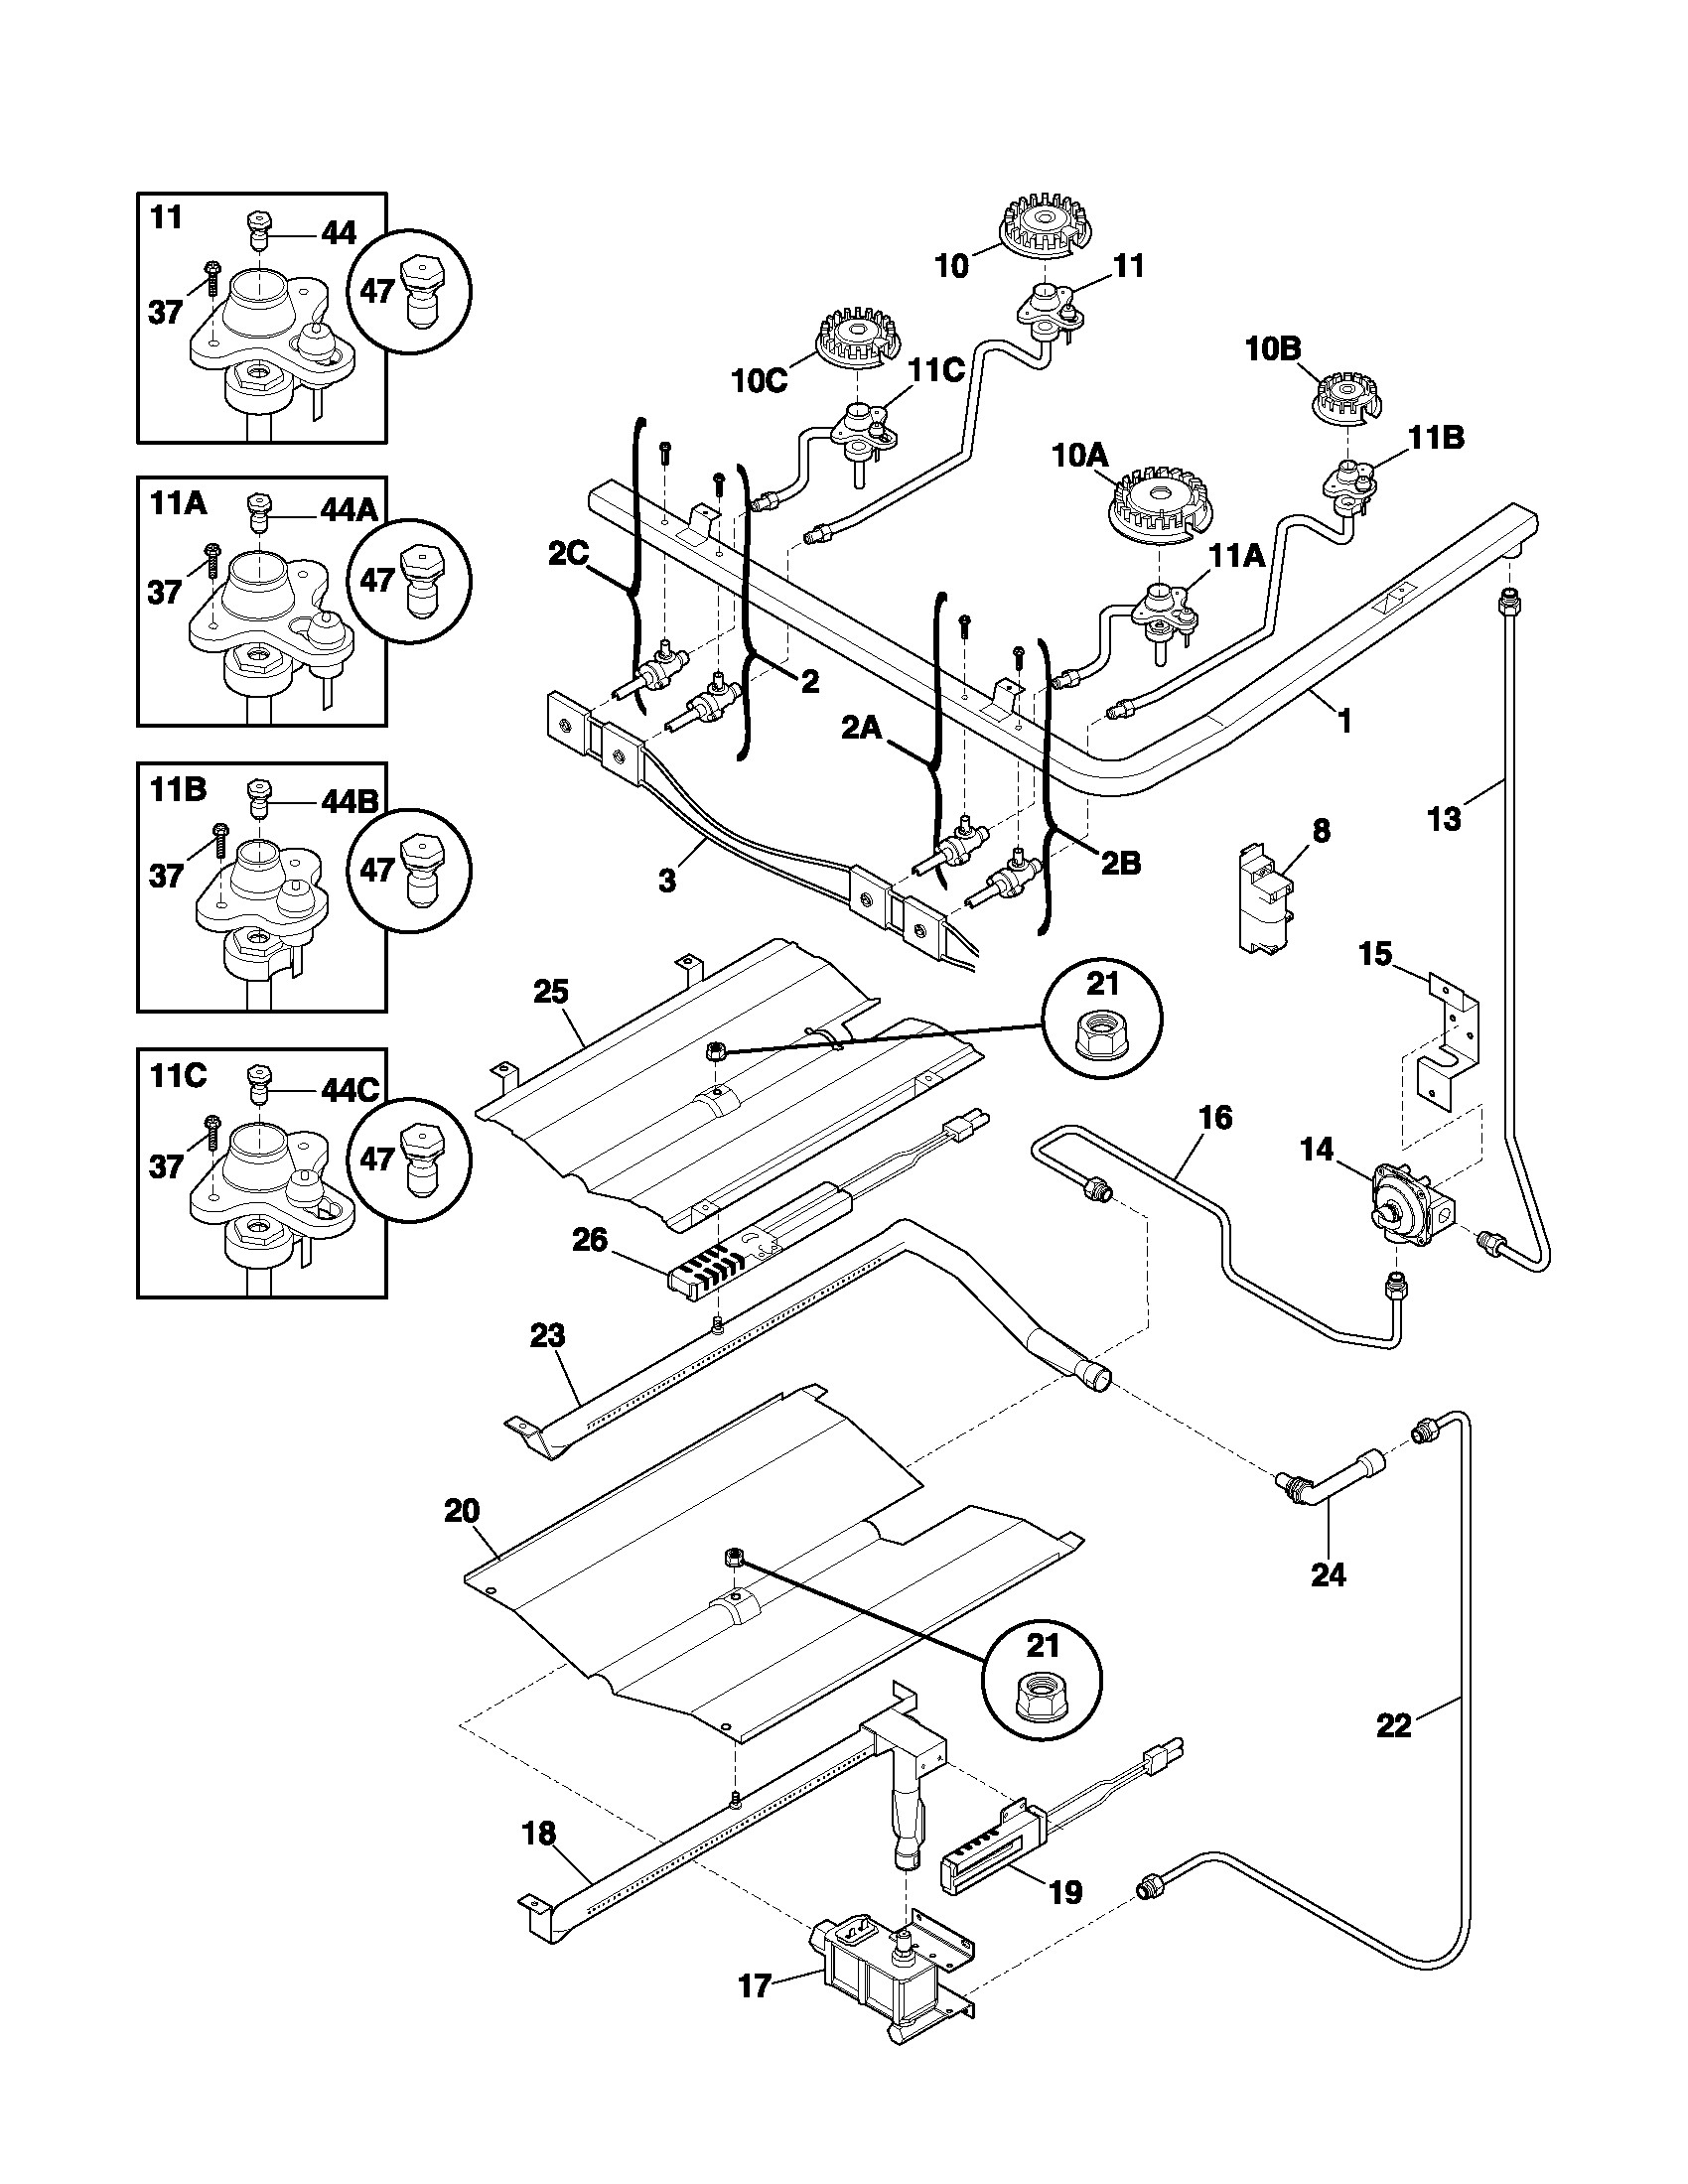 Wiring Diagram For Frigidaire Oven | Online Wiring Diagram on oven wiring diagram, kenmore model 790 electric range schematic, home wiring diagram, kenmore stove manual, kenmore appliance wiring diagrams, kenmore schematic diagram, kenmore stove clock, kenmore 20 wiring, kenmore oven parts, kenmore stove schematic, kenmore stove thermostat, kenmore stove adjustment, kenmore dishwasher hookup diagram, kenmore refrigerator diagram, kenmore stove coil, kenmore wire diagrams, kenmore oven schematic, kenmore stove troubleshooting, kenmore stove model number location,